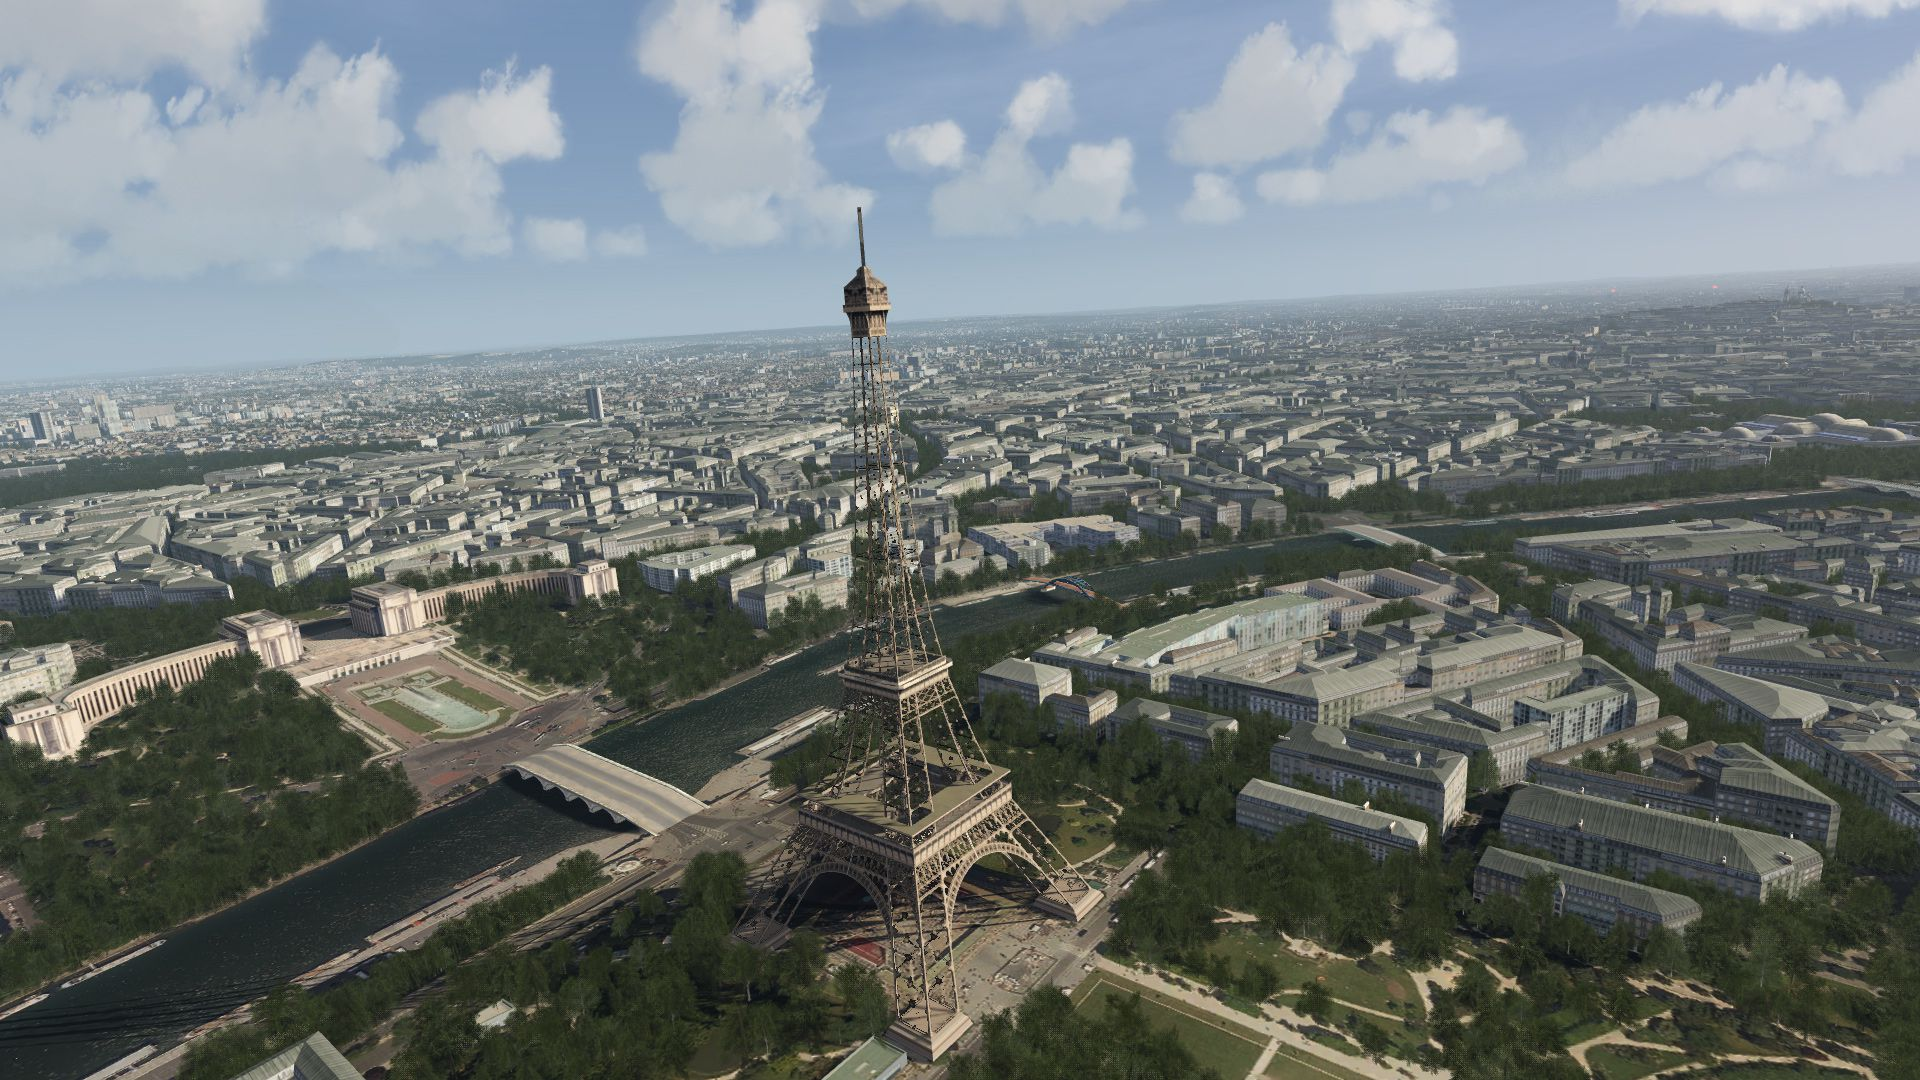 22127-france-vfr-paris-ille-de-france-aerofly-fs2-09-jpg